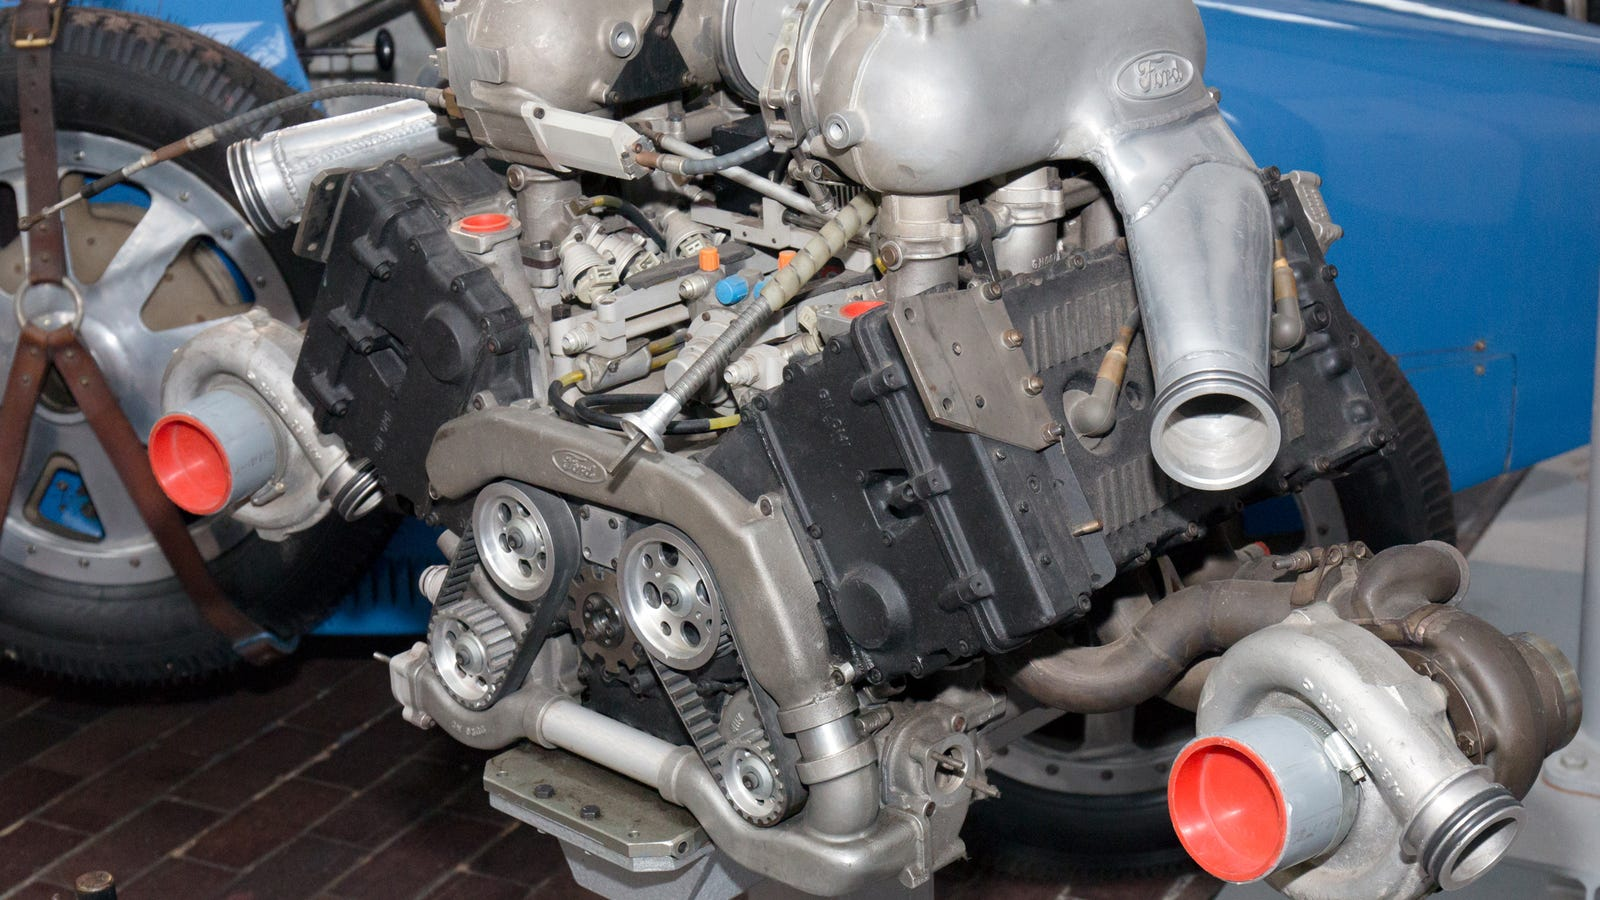 The 1000 Horsepower Ford Turbo Engine Nobody Remembers